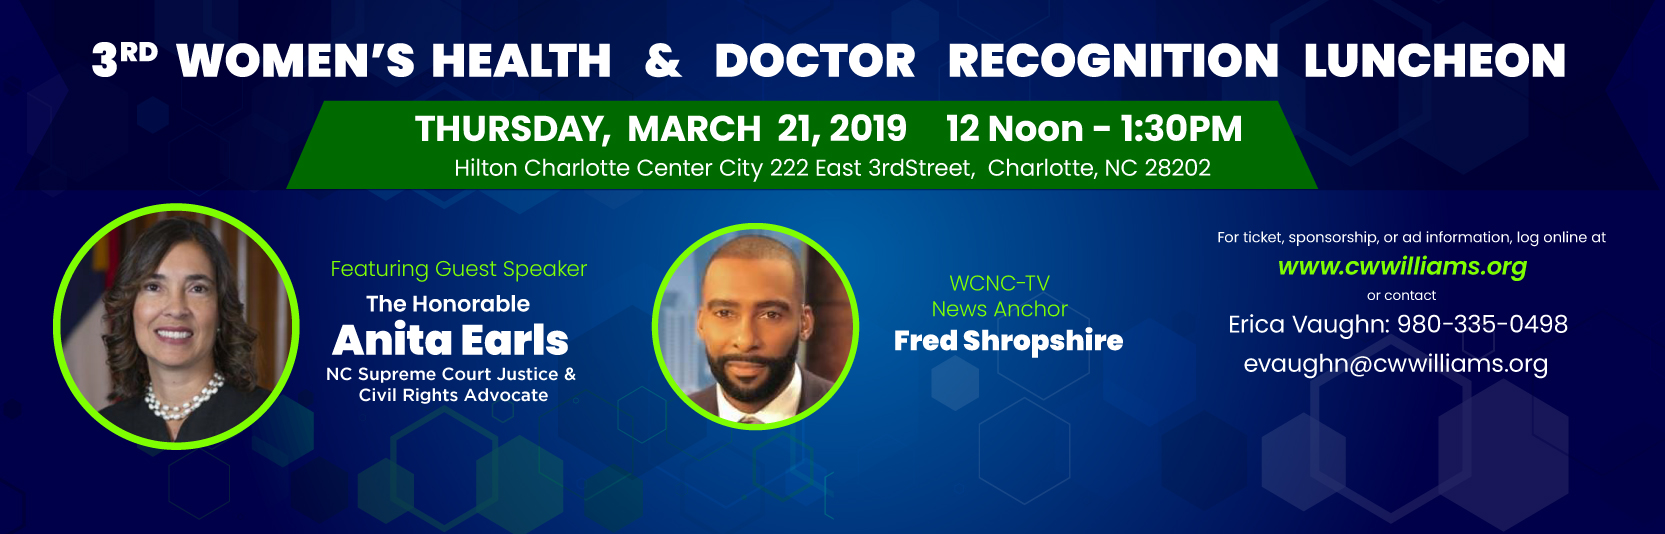 3rd Annual Women's Health & Doctor Recognition Luncheon